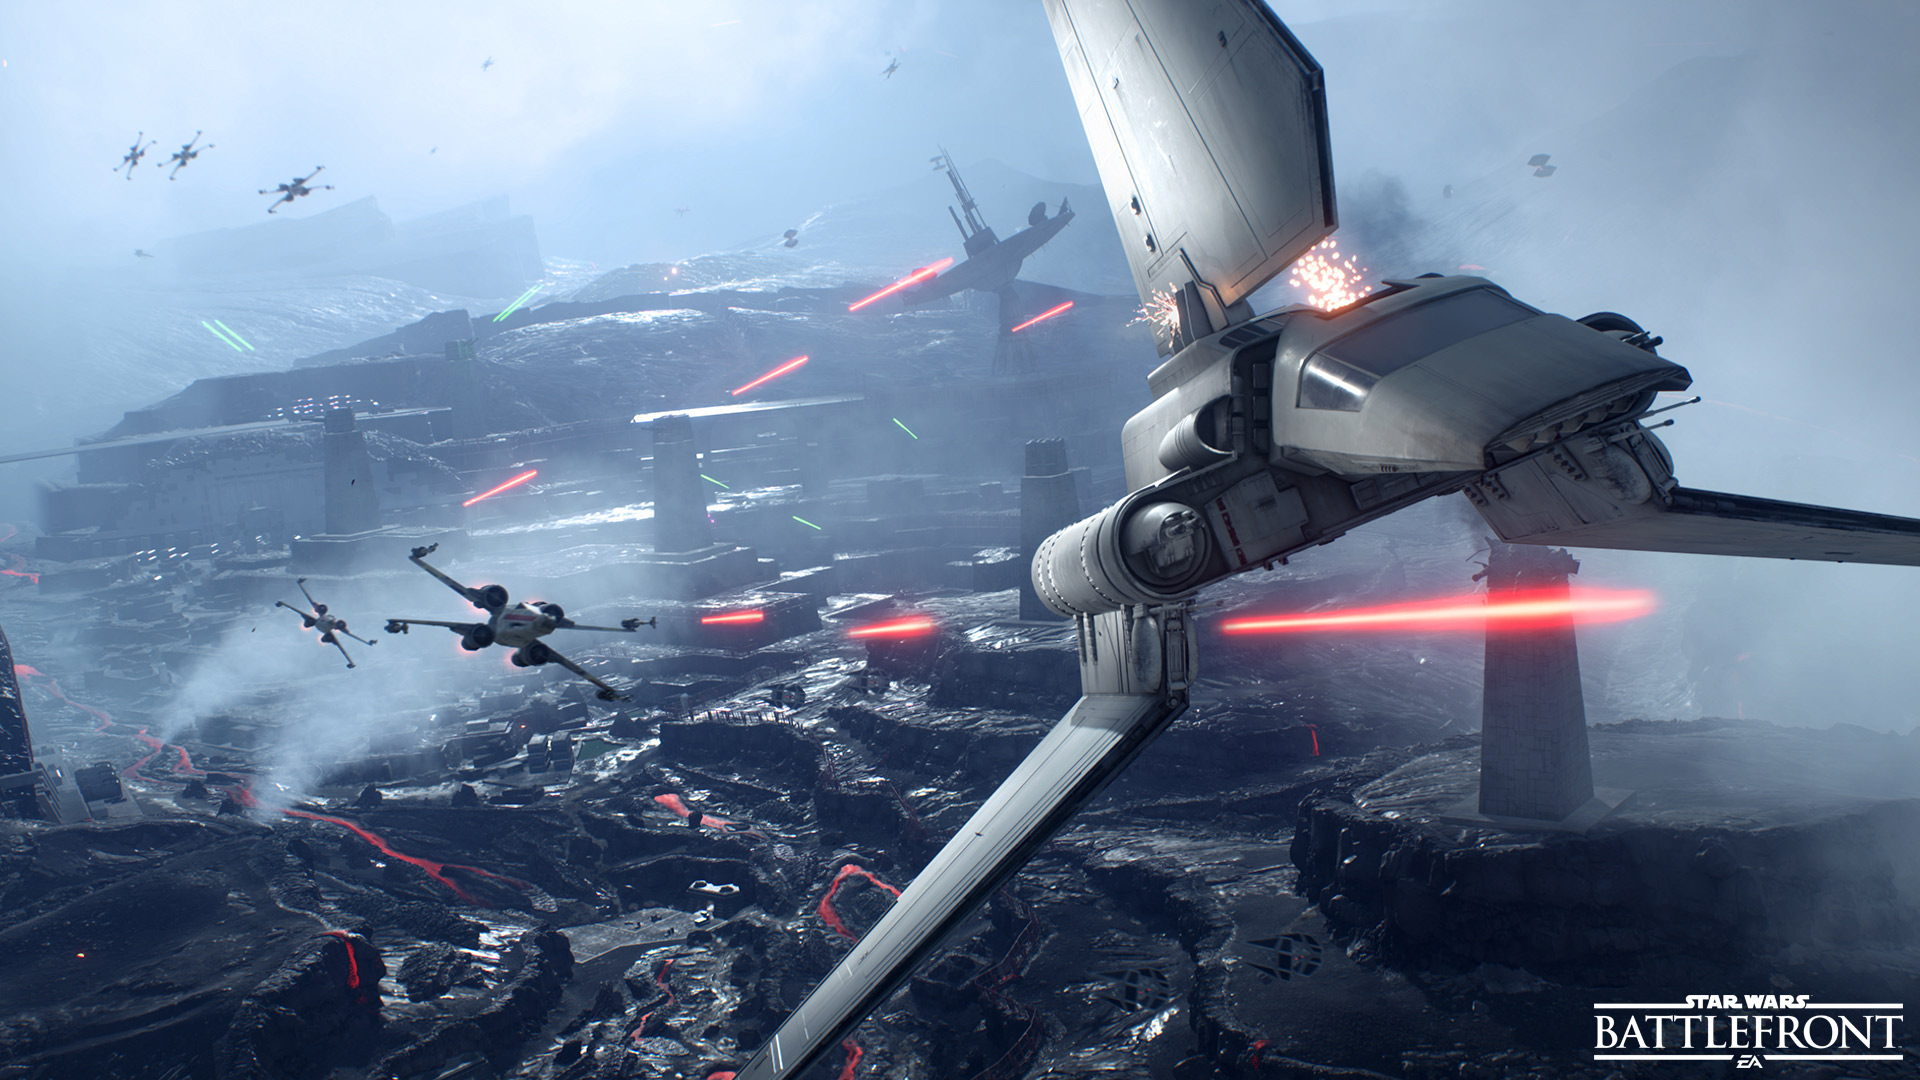 Star Wars Battlefront 2015 Wallpapers Pictures Images